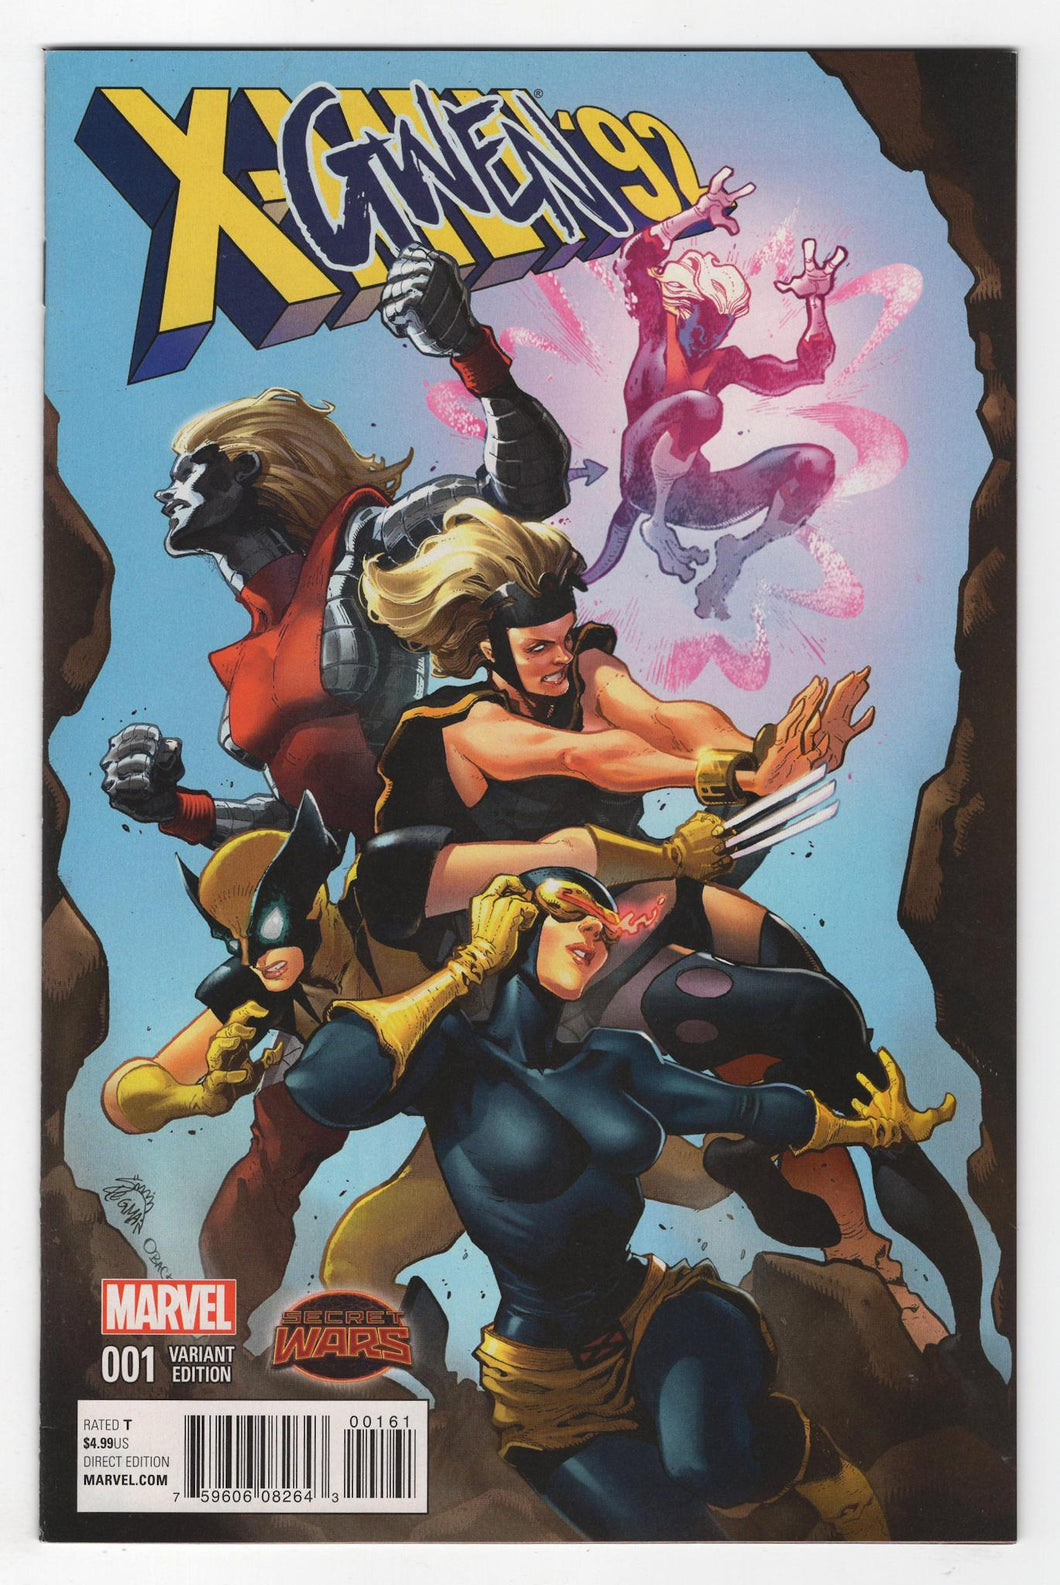 X-Men '92 #1 Stegman Variant Cover Front